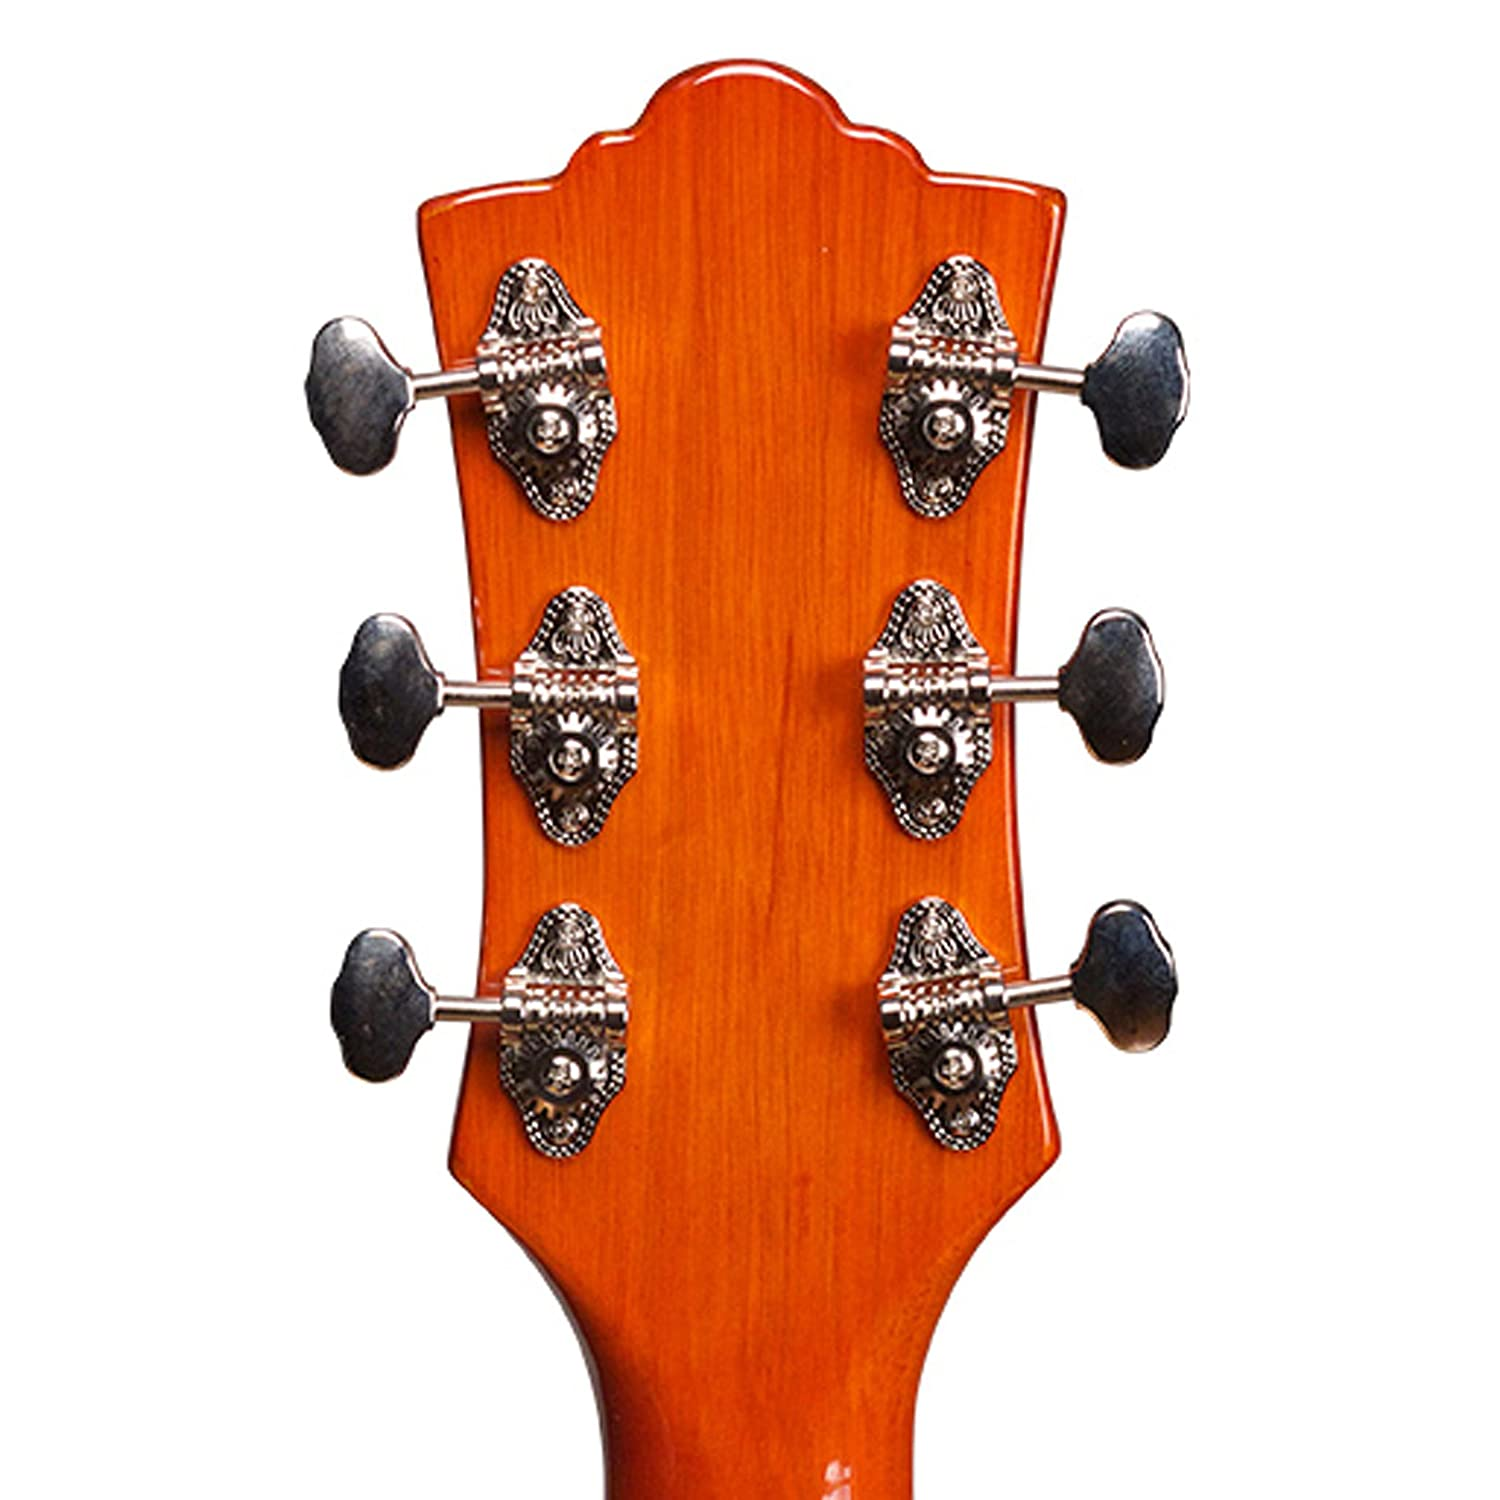 guild starfire ii st hollow body electric guitar